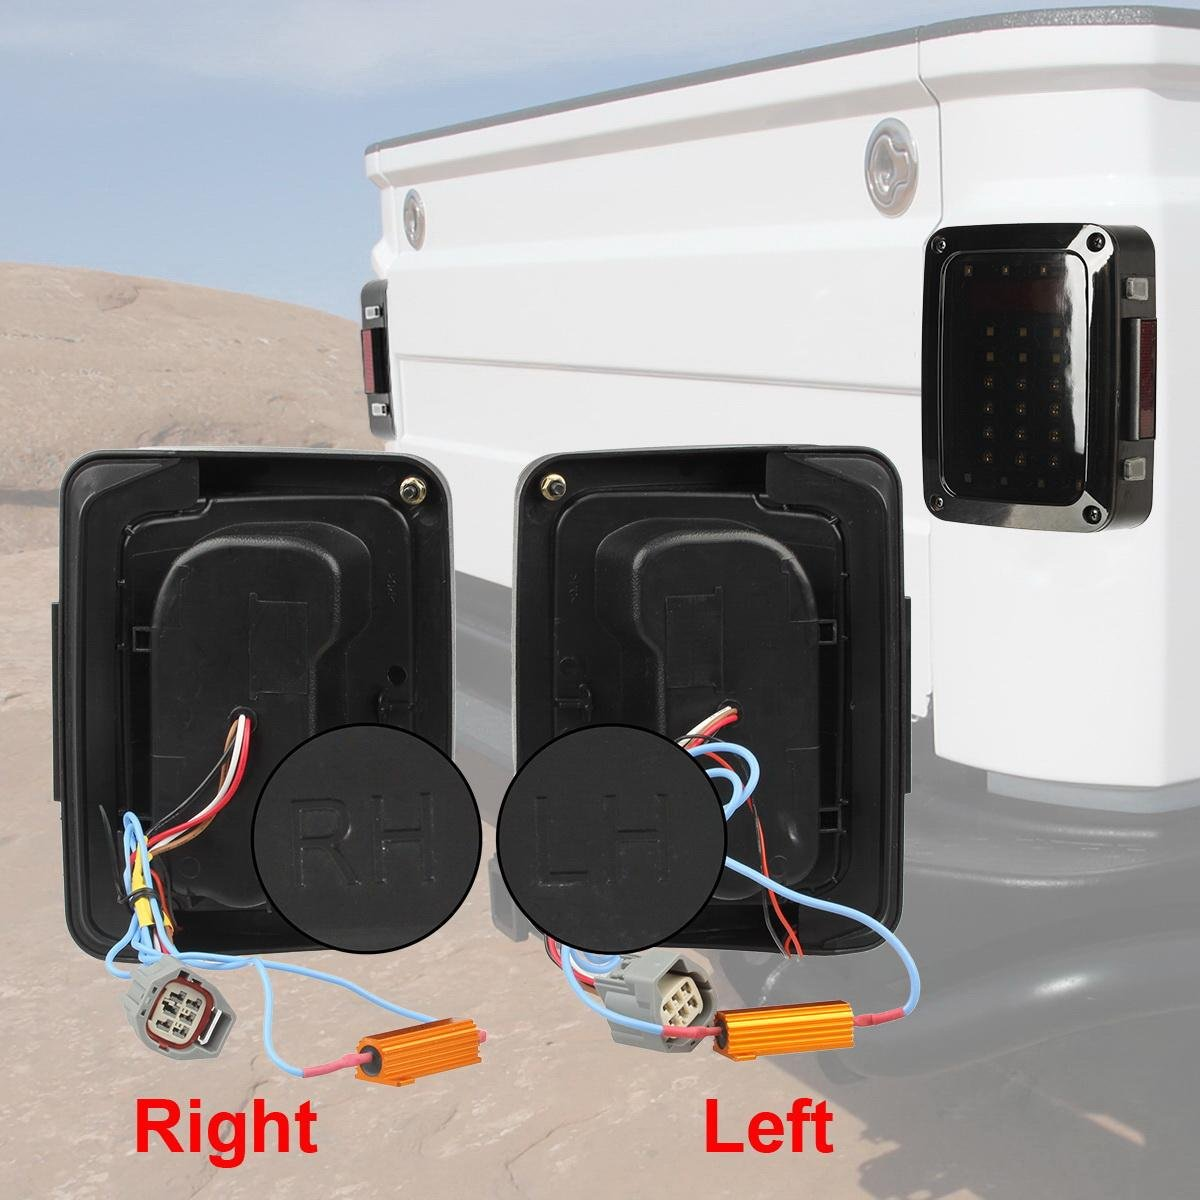 Vplus Pack Of 4 Black Rear Euro Tail Light Guard Cover 20032004 Toyota Sequoia Trailer Wiring Harness Pin Flat Style Protectors Led Lights Jk 2007 2017 Jeep Wrangler Running Brake Backup Reverse